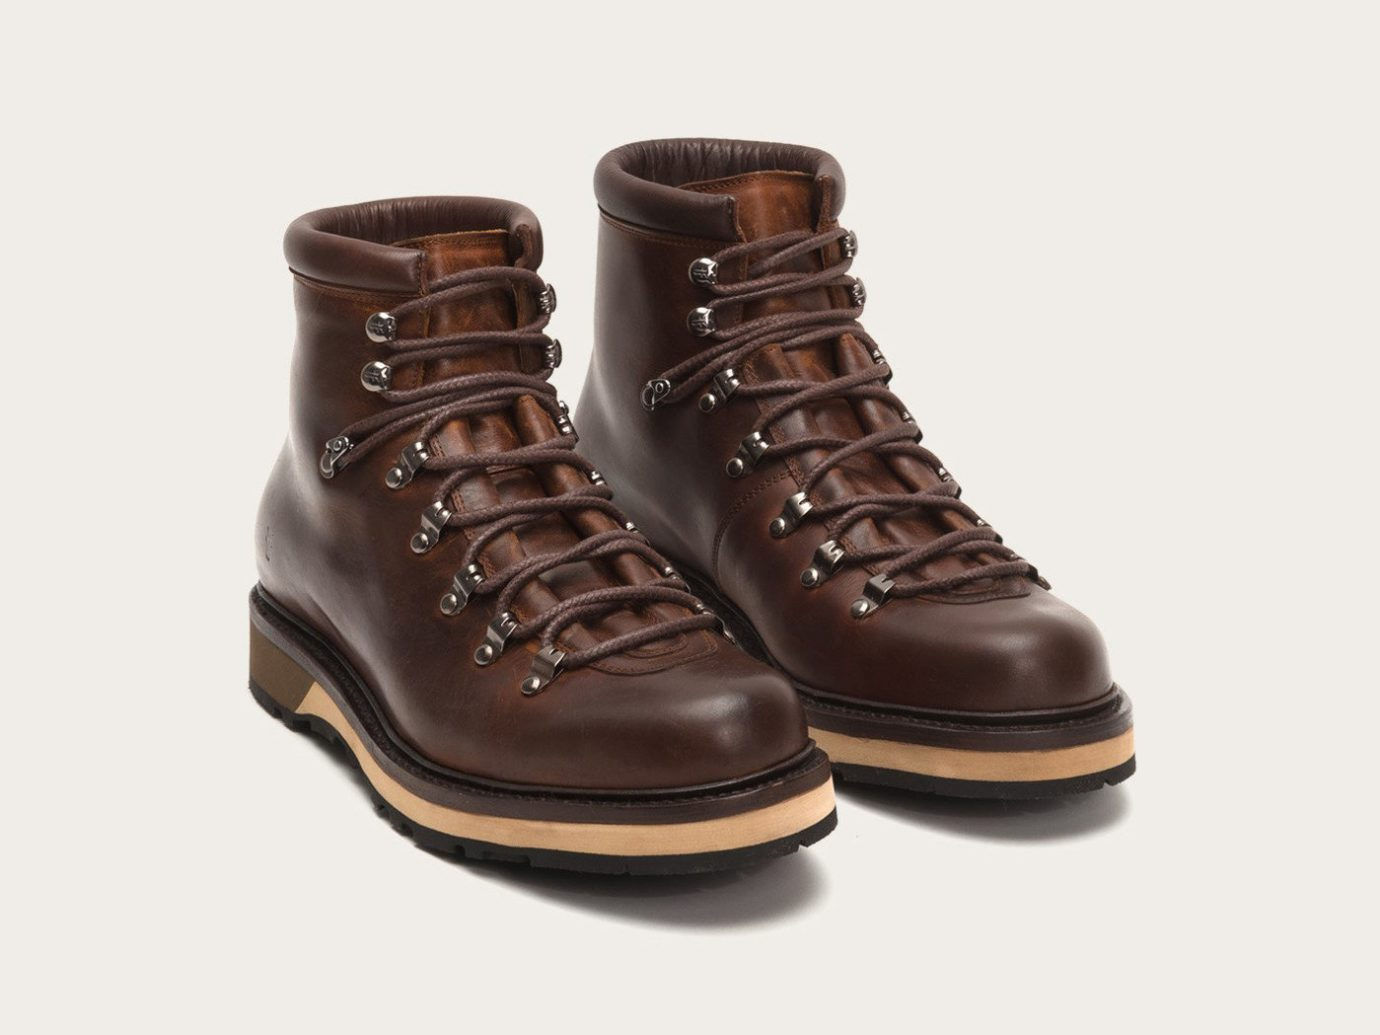 Style + Design Travel Shop footwear indoor clothing boot brown shoe work boots walking shoe leather chocolate product stack